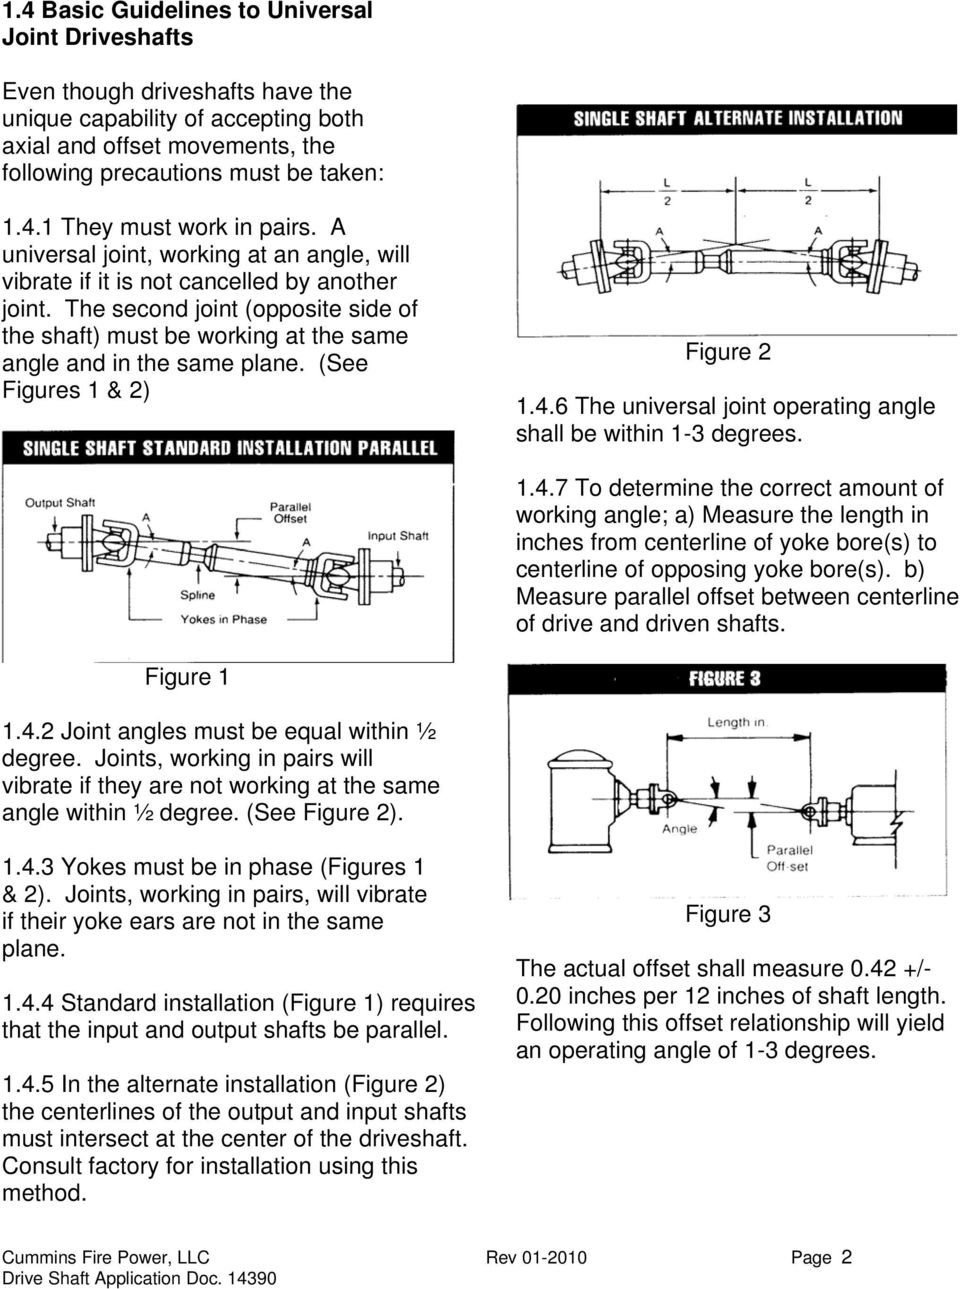 (See Figures 1 & 2) Figure 2 1.4.6 The universal joint operating angle shall be within 1-3 degrees. 1.4.7 To determine the correct amount of working angle; a) Measure the length in inches from centerline of yoke bore(s) to centerline of opposing yoke bore(s).